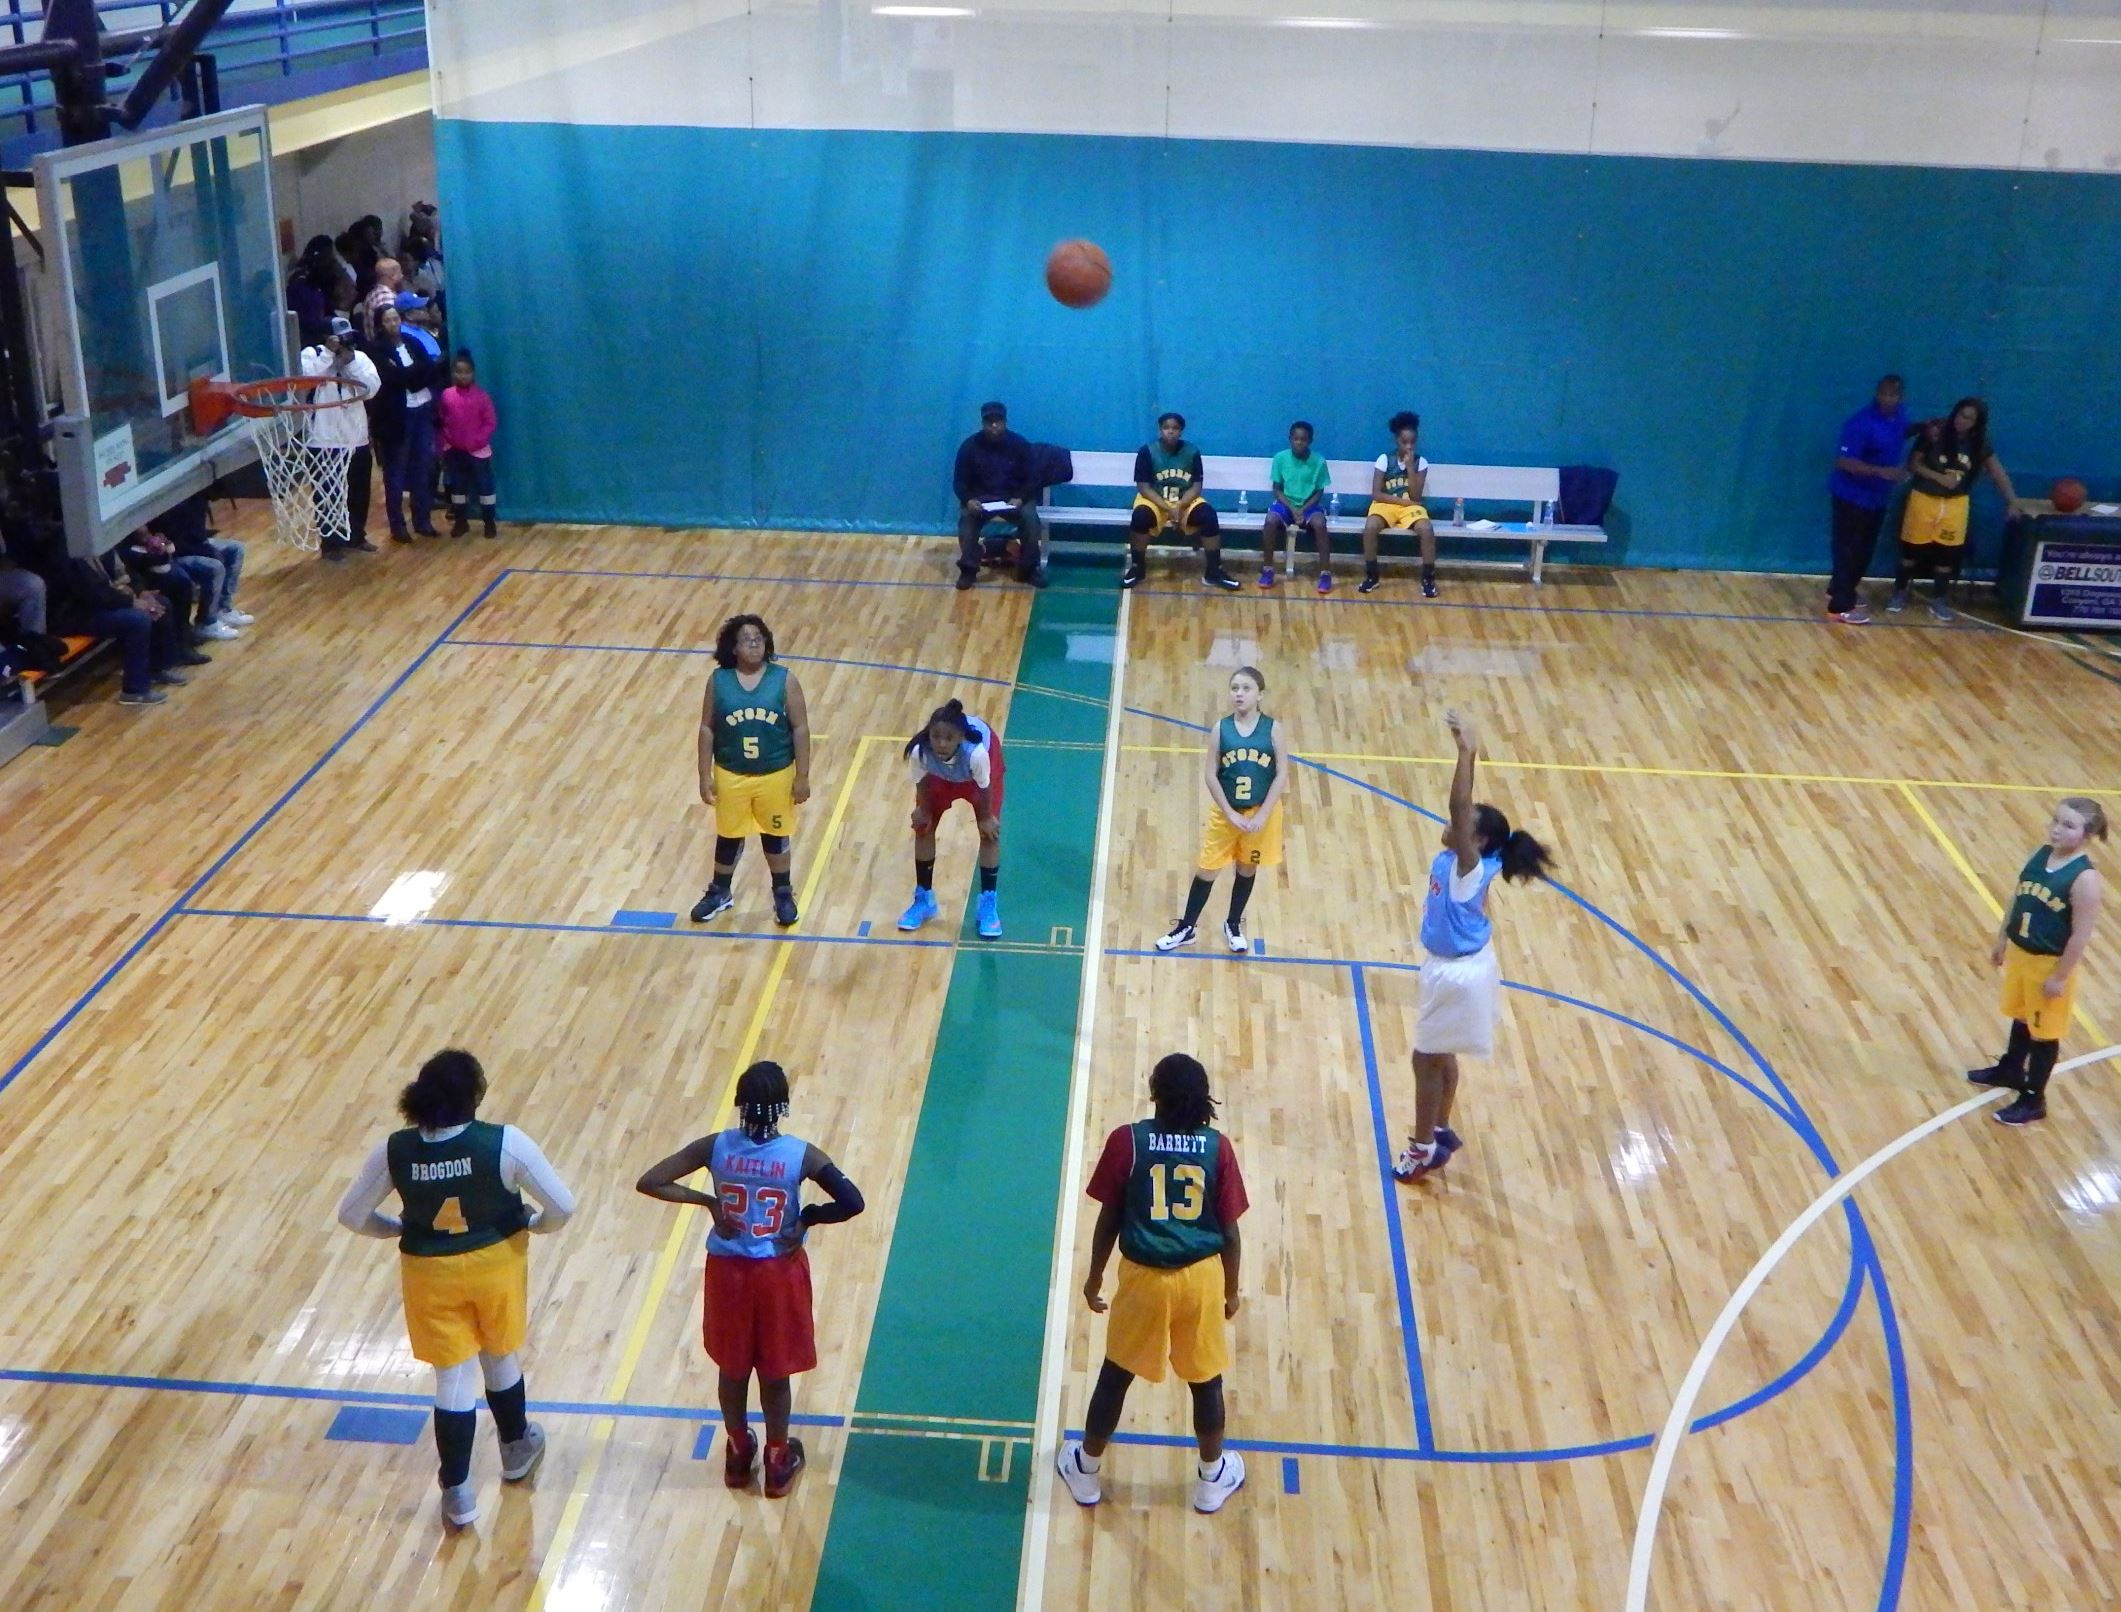 Young kids basketball game